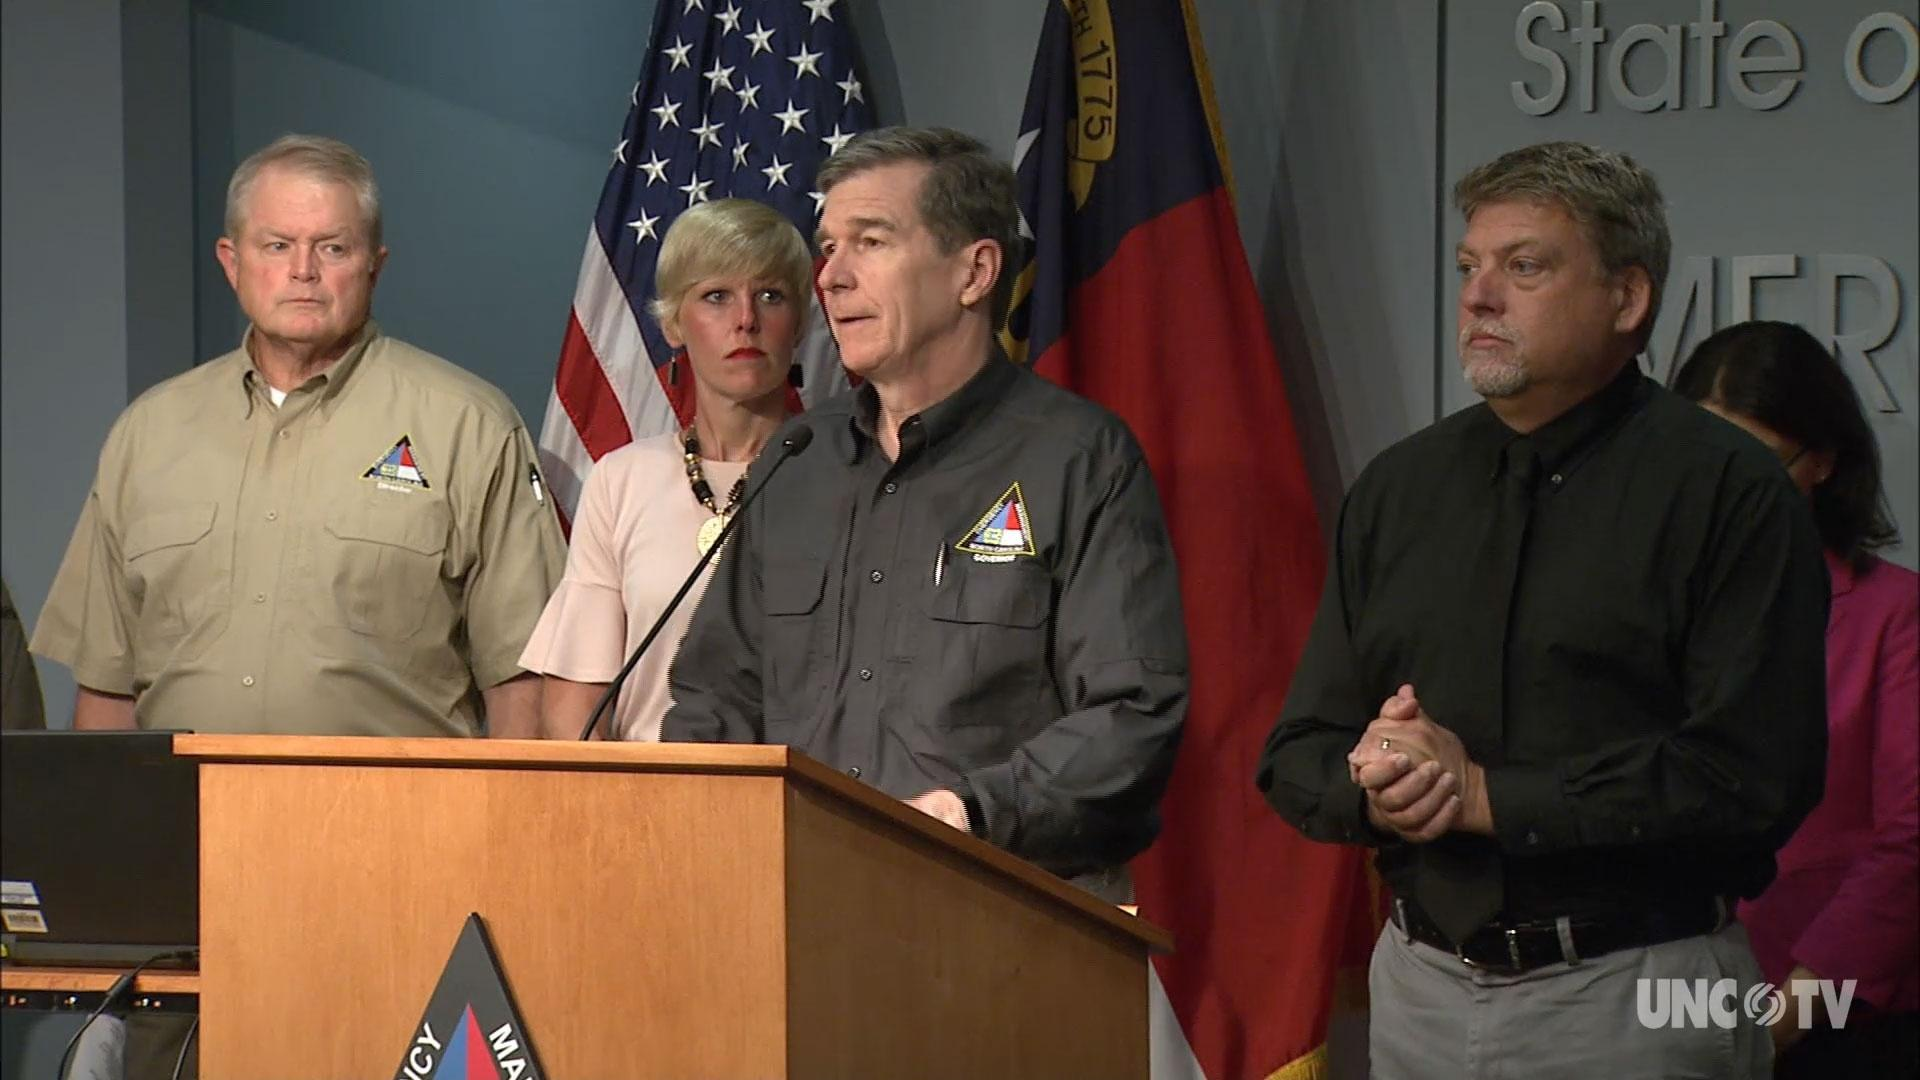 NC Gov. Cooper: Weather Briefing 4:05 PM 09/06/19